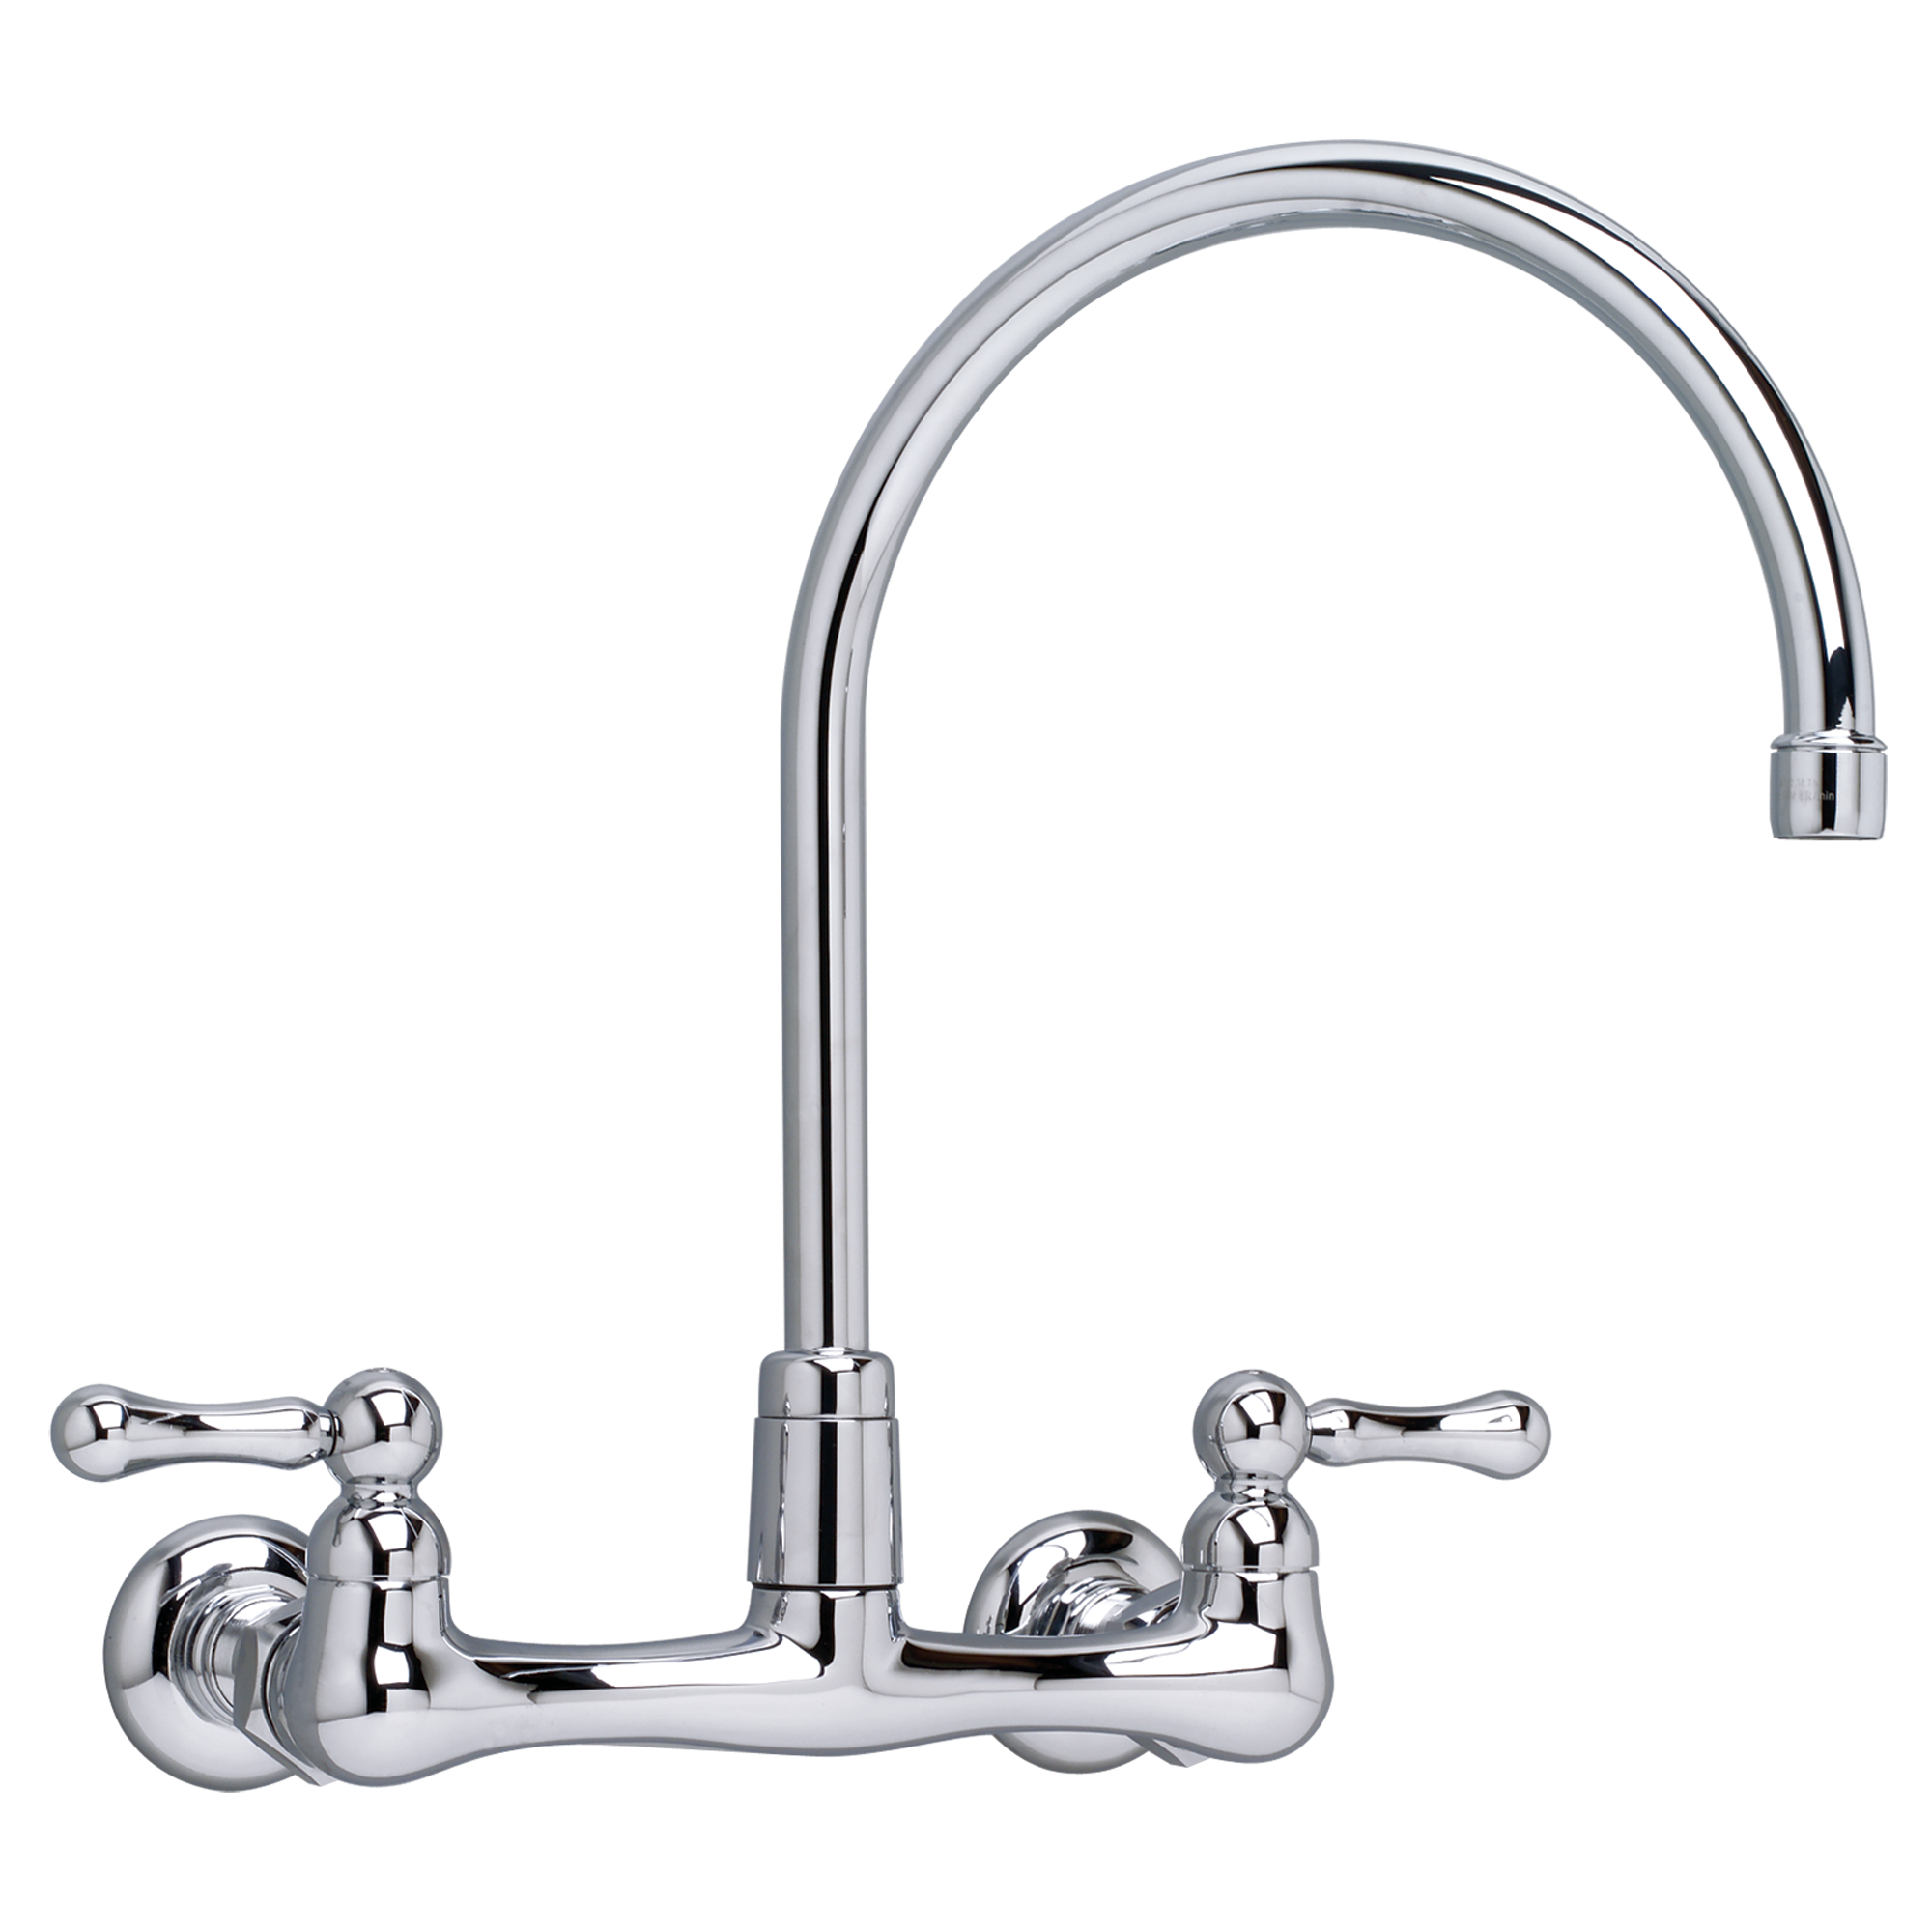 Commercial faucets bathroom american. Faucet clipart lab sink